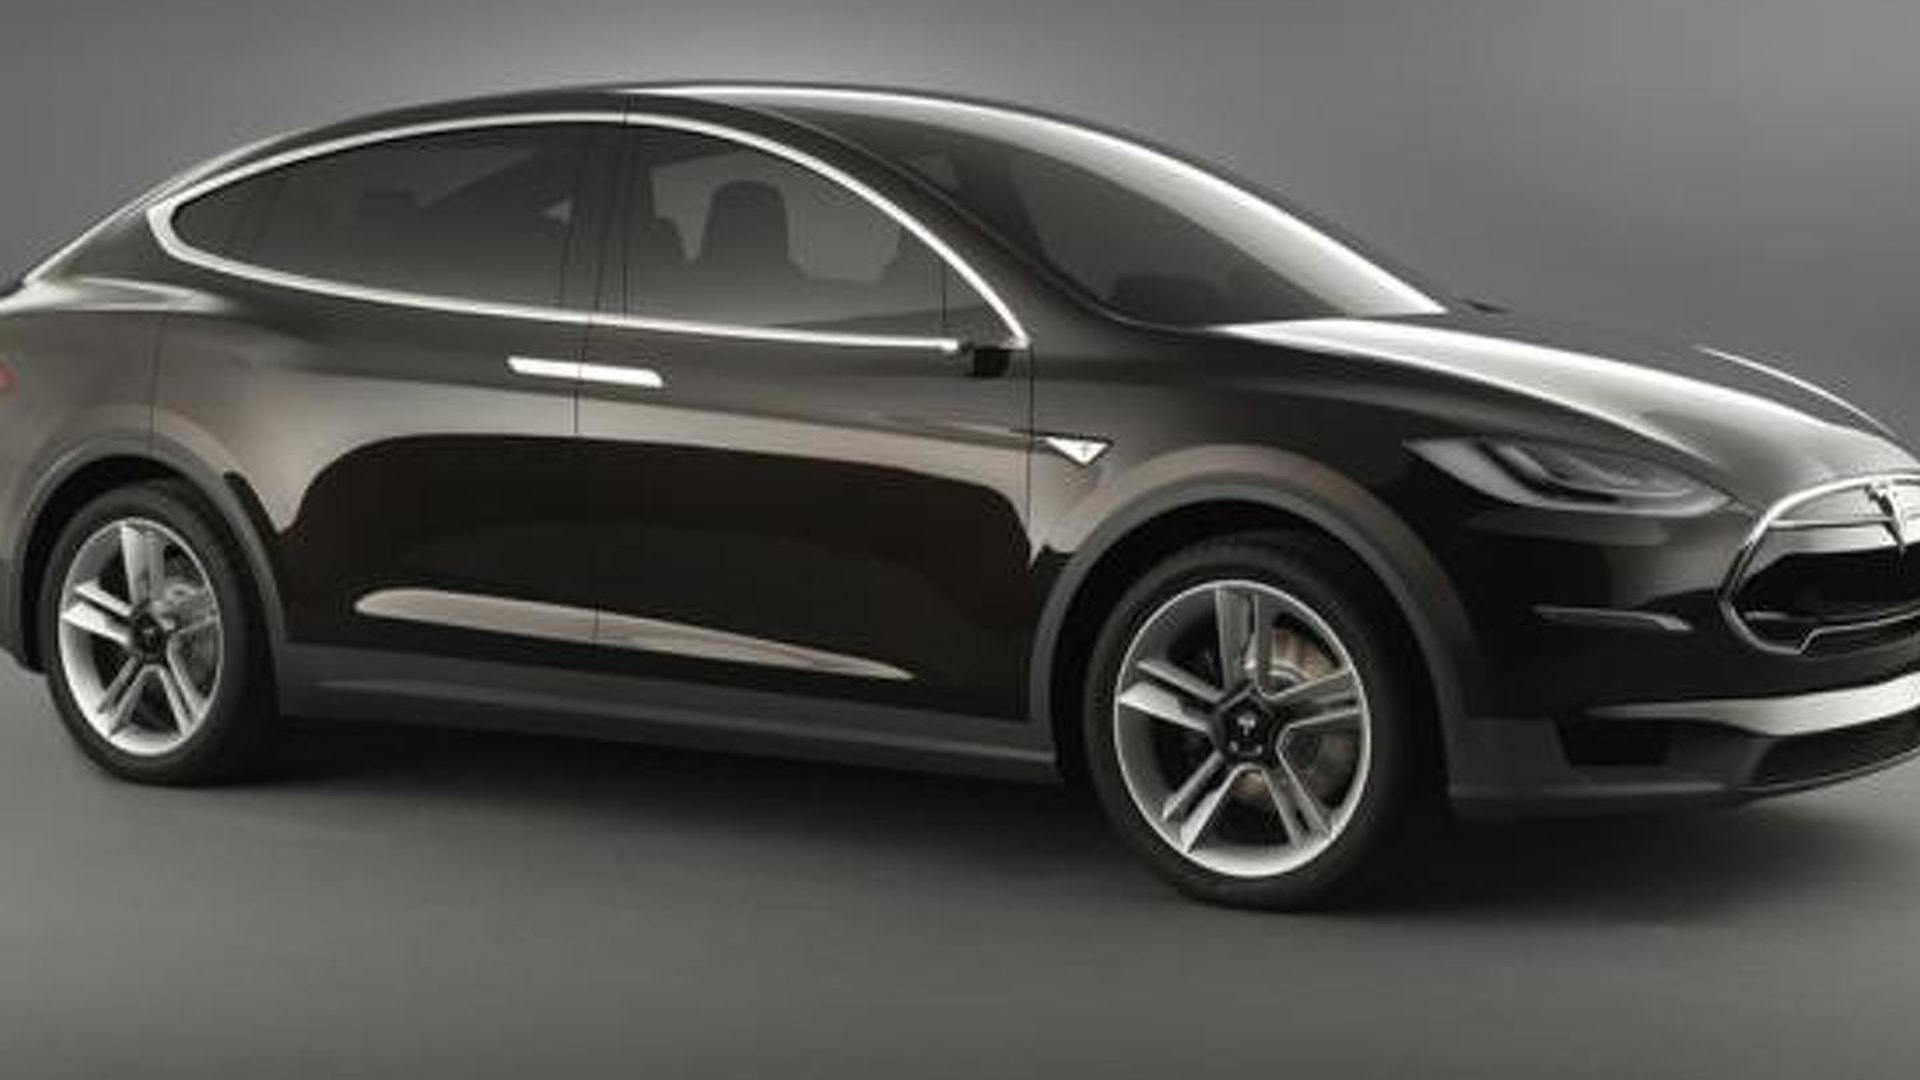 Tesla announces $40M worth of Model X reservations in one day